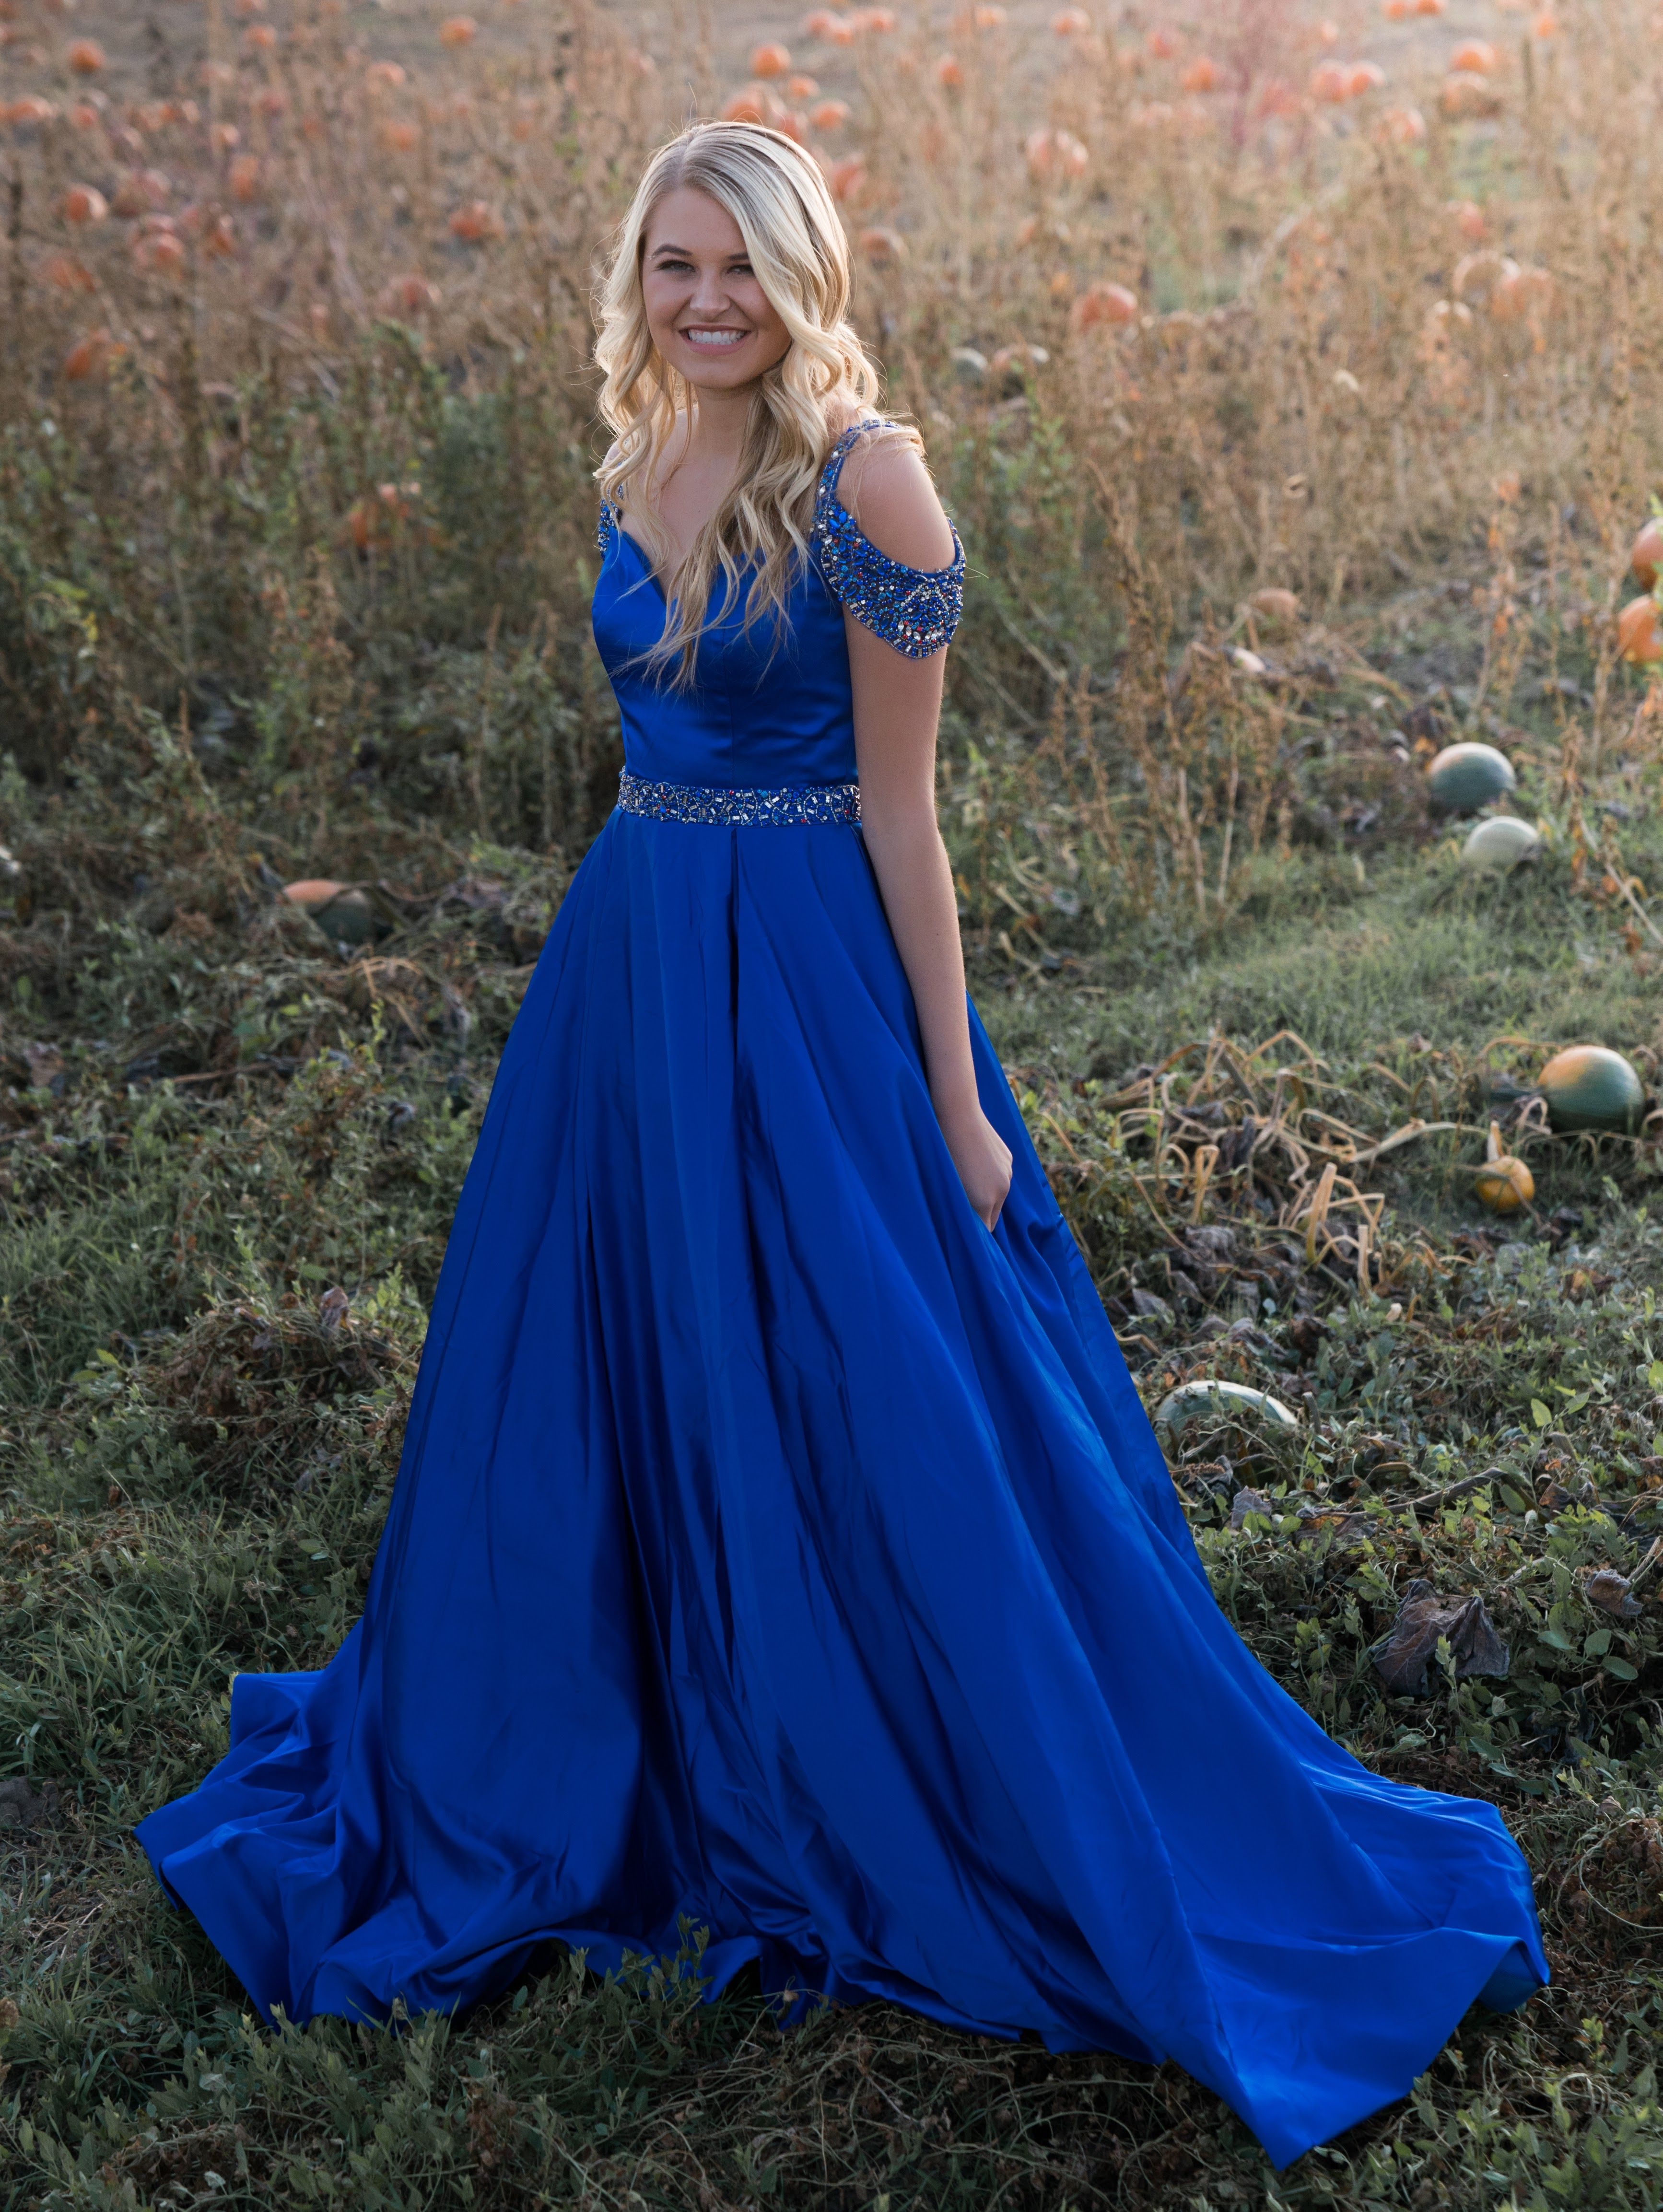 7fe5d4f14d SHERRI HILL Royal Blue Off the Shoulder Ballgown YPSILON DRESSES Prom  Pageant Evening Wear Sweethearts Homecoming School Dance Formal Formalwear